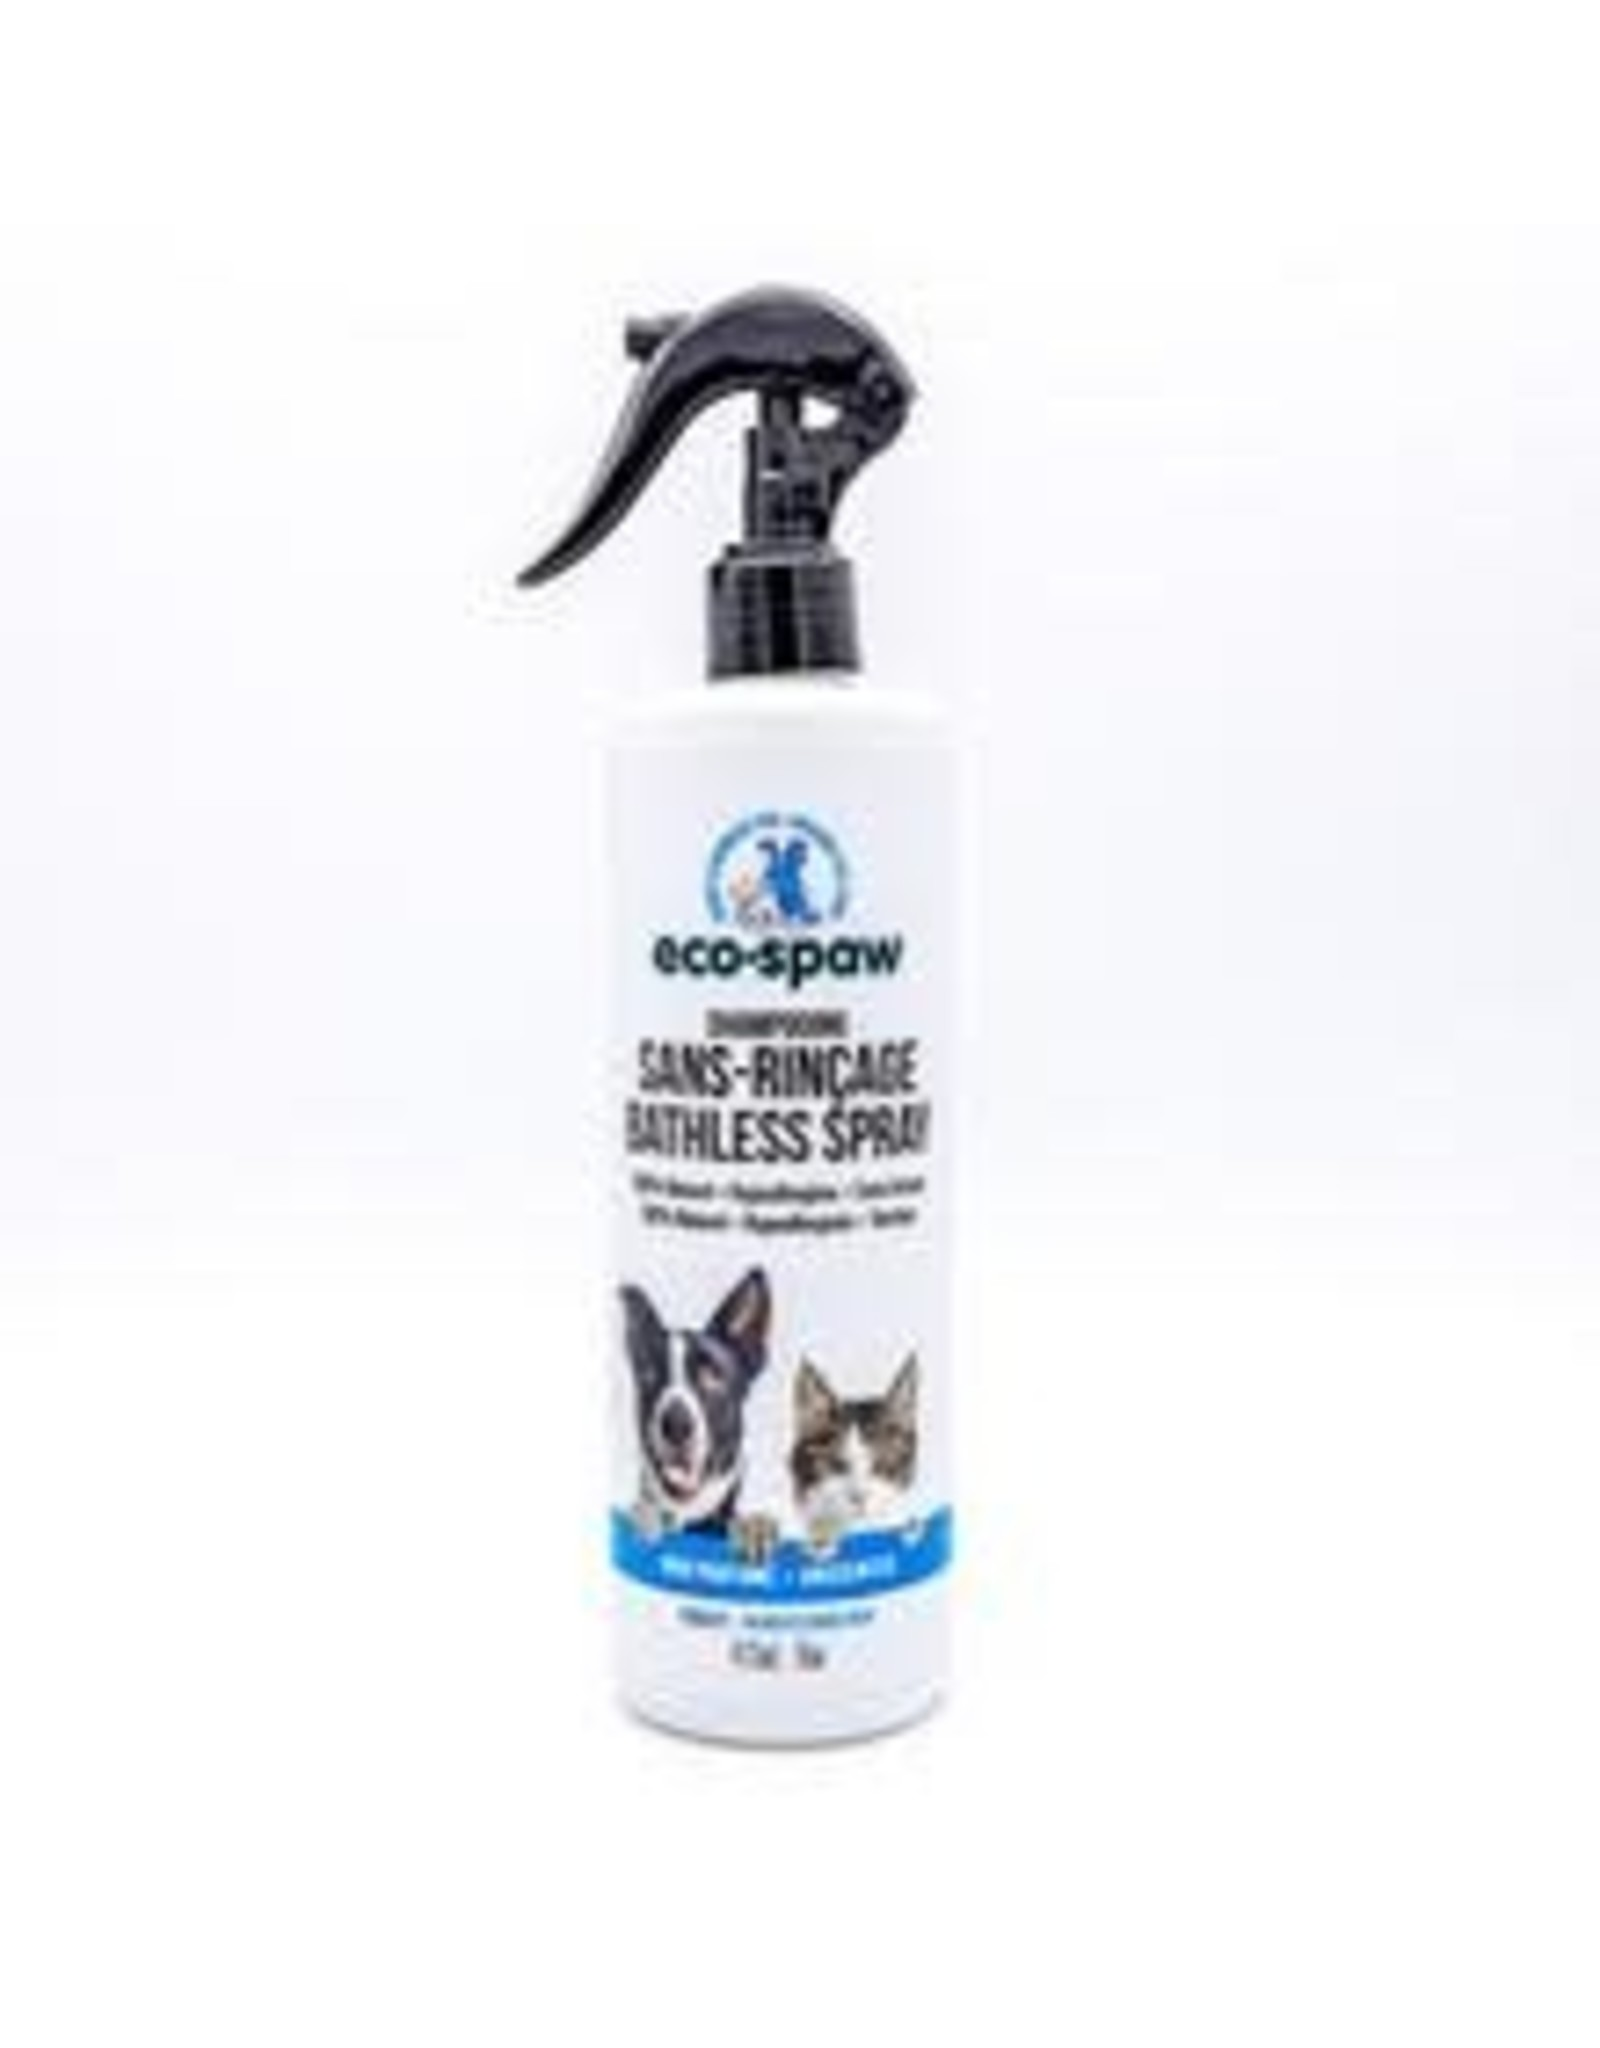 Eco-Spaw Eco-Spaw - Bathless Spray 16oz - Unscented